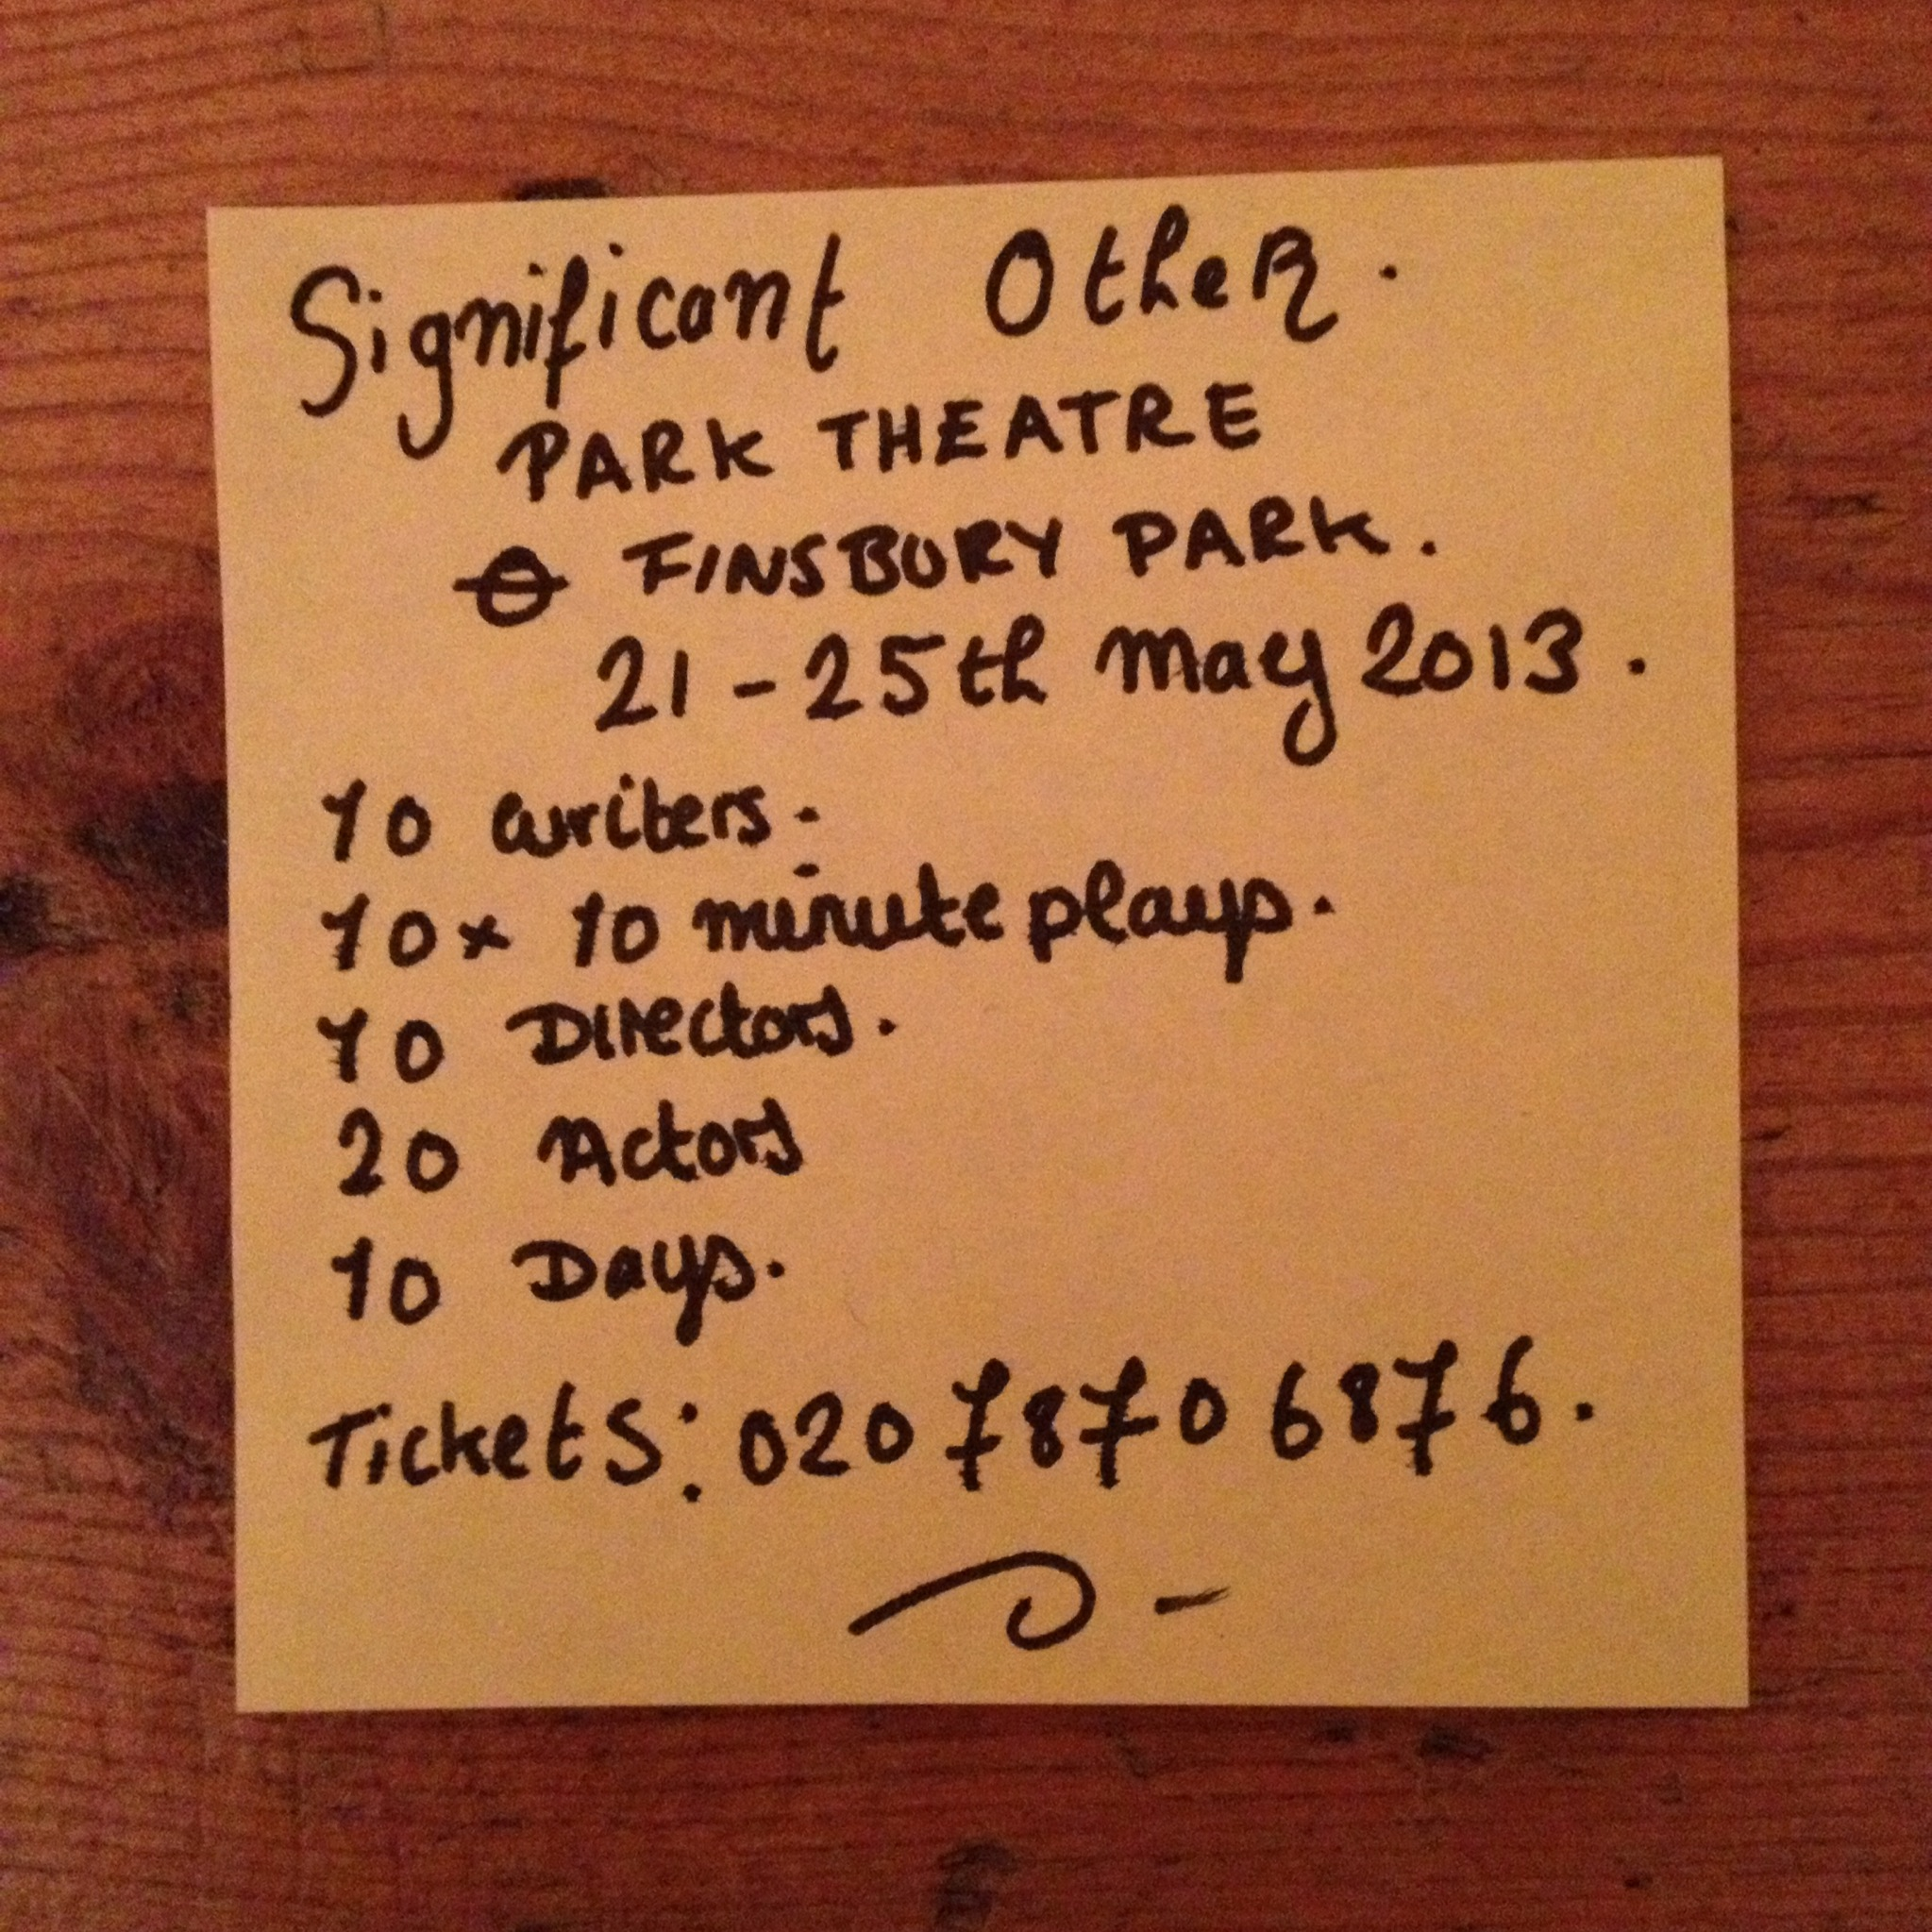 Join us for 100 minutes of creative playtime   21-25th May 2013 Morris Space, Park Theatre - Finsbury Park